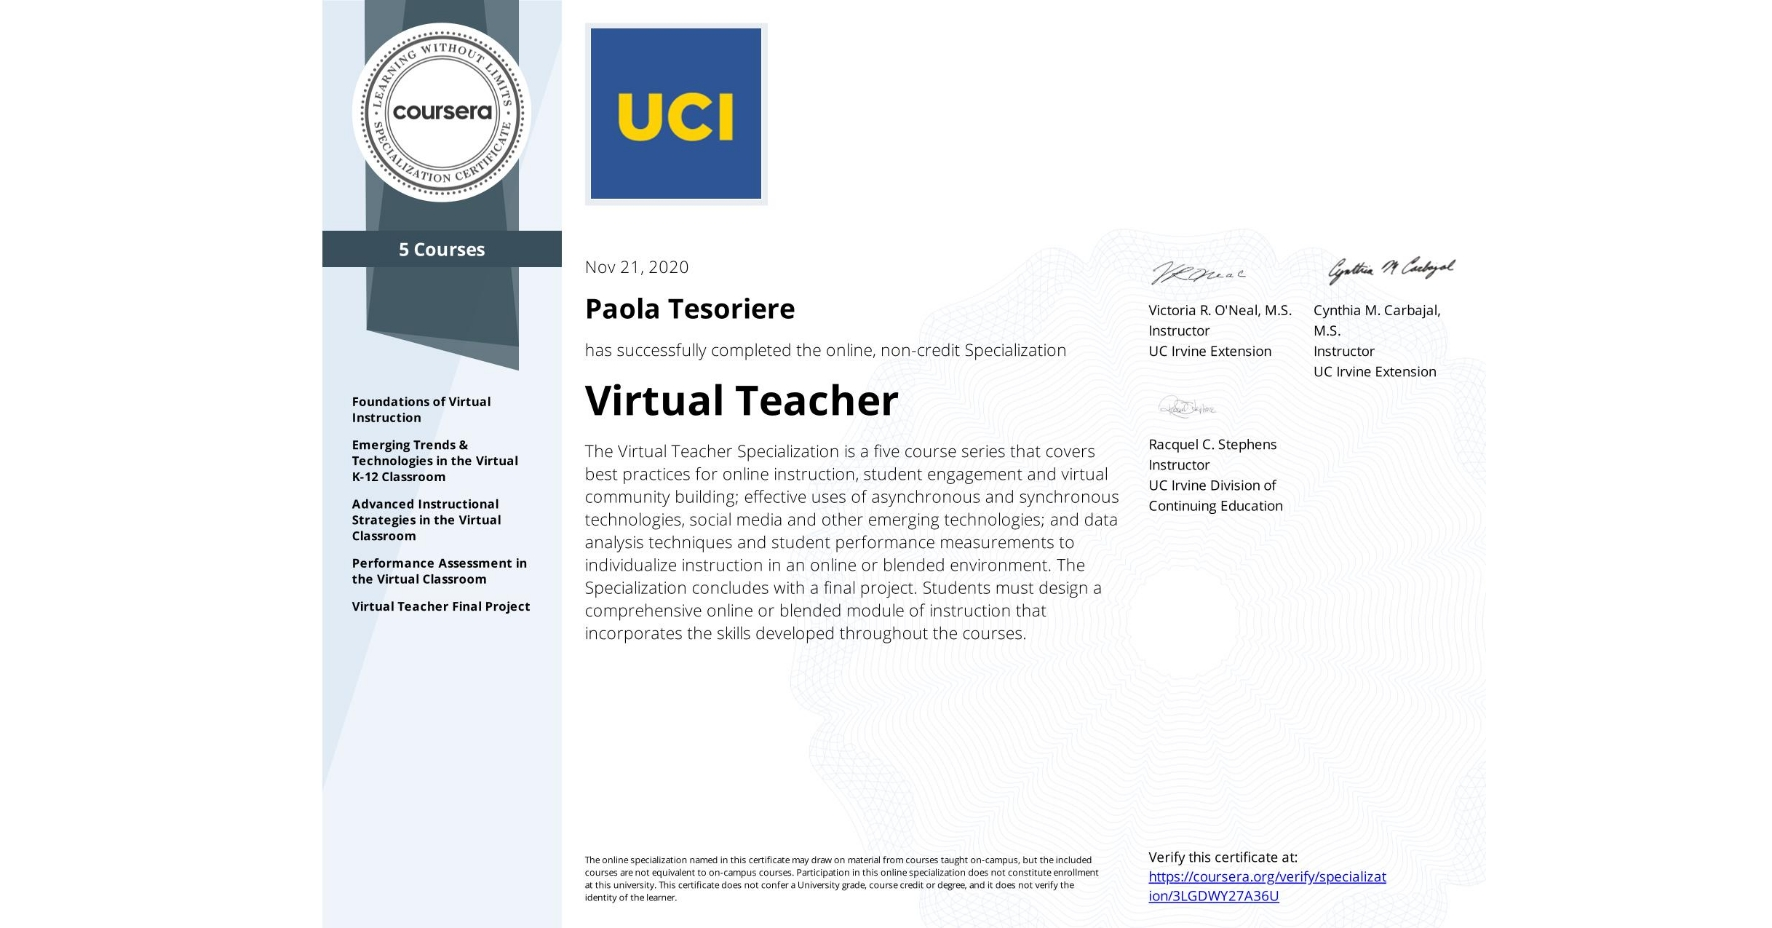 View certificate for Paola Tesoriere, Virtual Teacher, offered through Coursera. The Virtual Teacher Specialization is a five course series that covers best practices for online instruction, student engagement and virtual community building; effective uses of asynchronous and synchronous technologies, social media and other emerging technologies; and data analysis techniques and student performance measurements to individualize instruction in an online or blended environment. The Specialization concludes with a final project. Students must design a comprehensive online or blended module of instruction that incorporates the skills developed throughout the courses.